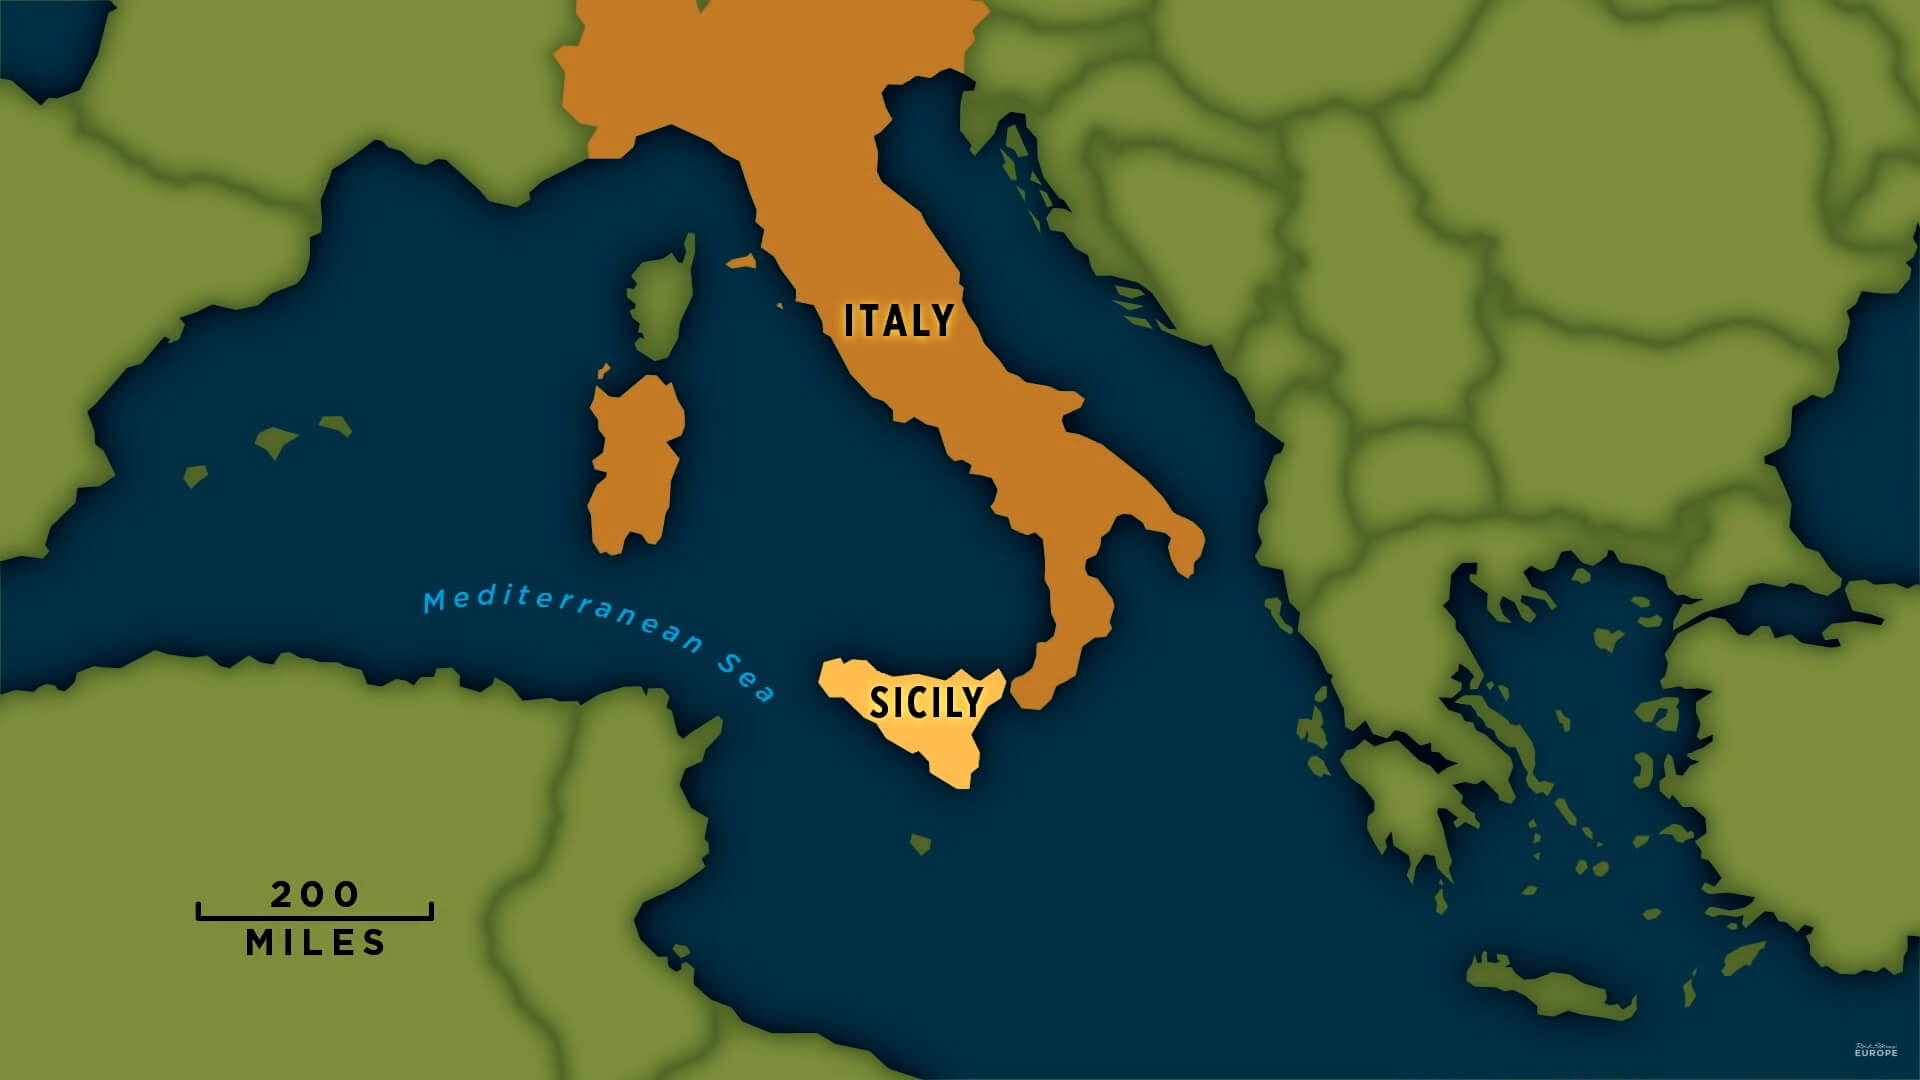 Sicily Tourism Map, Italy